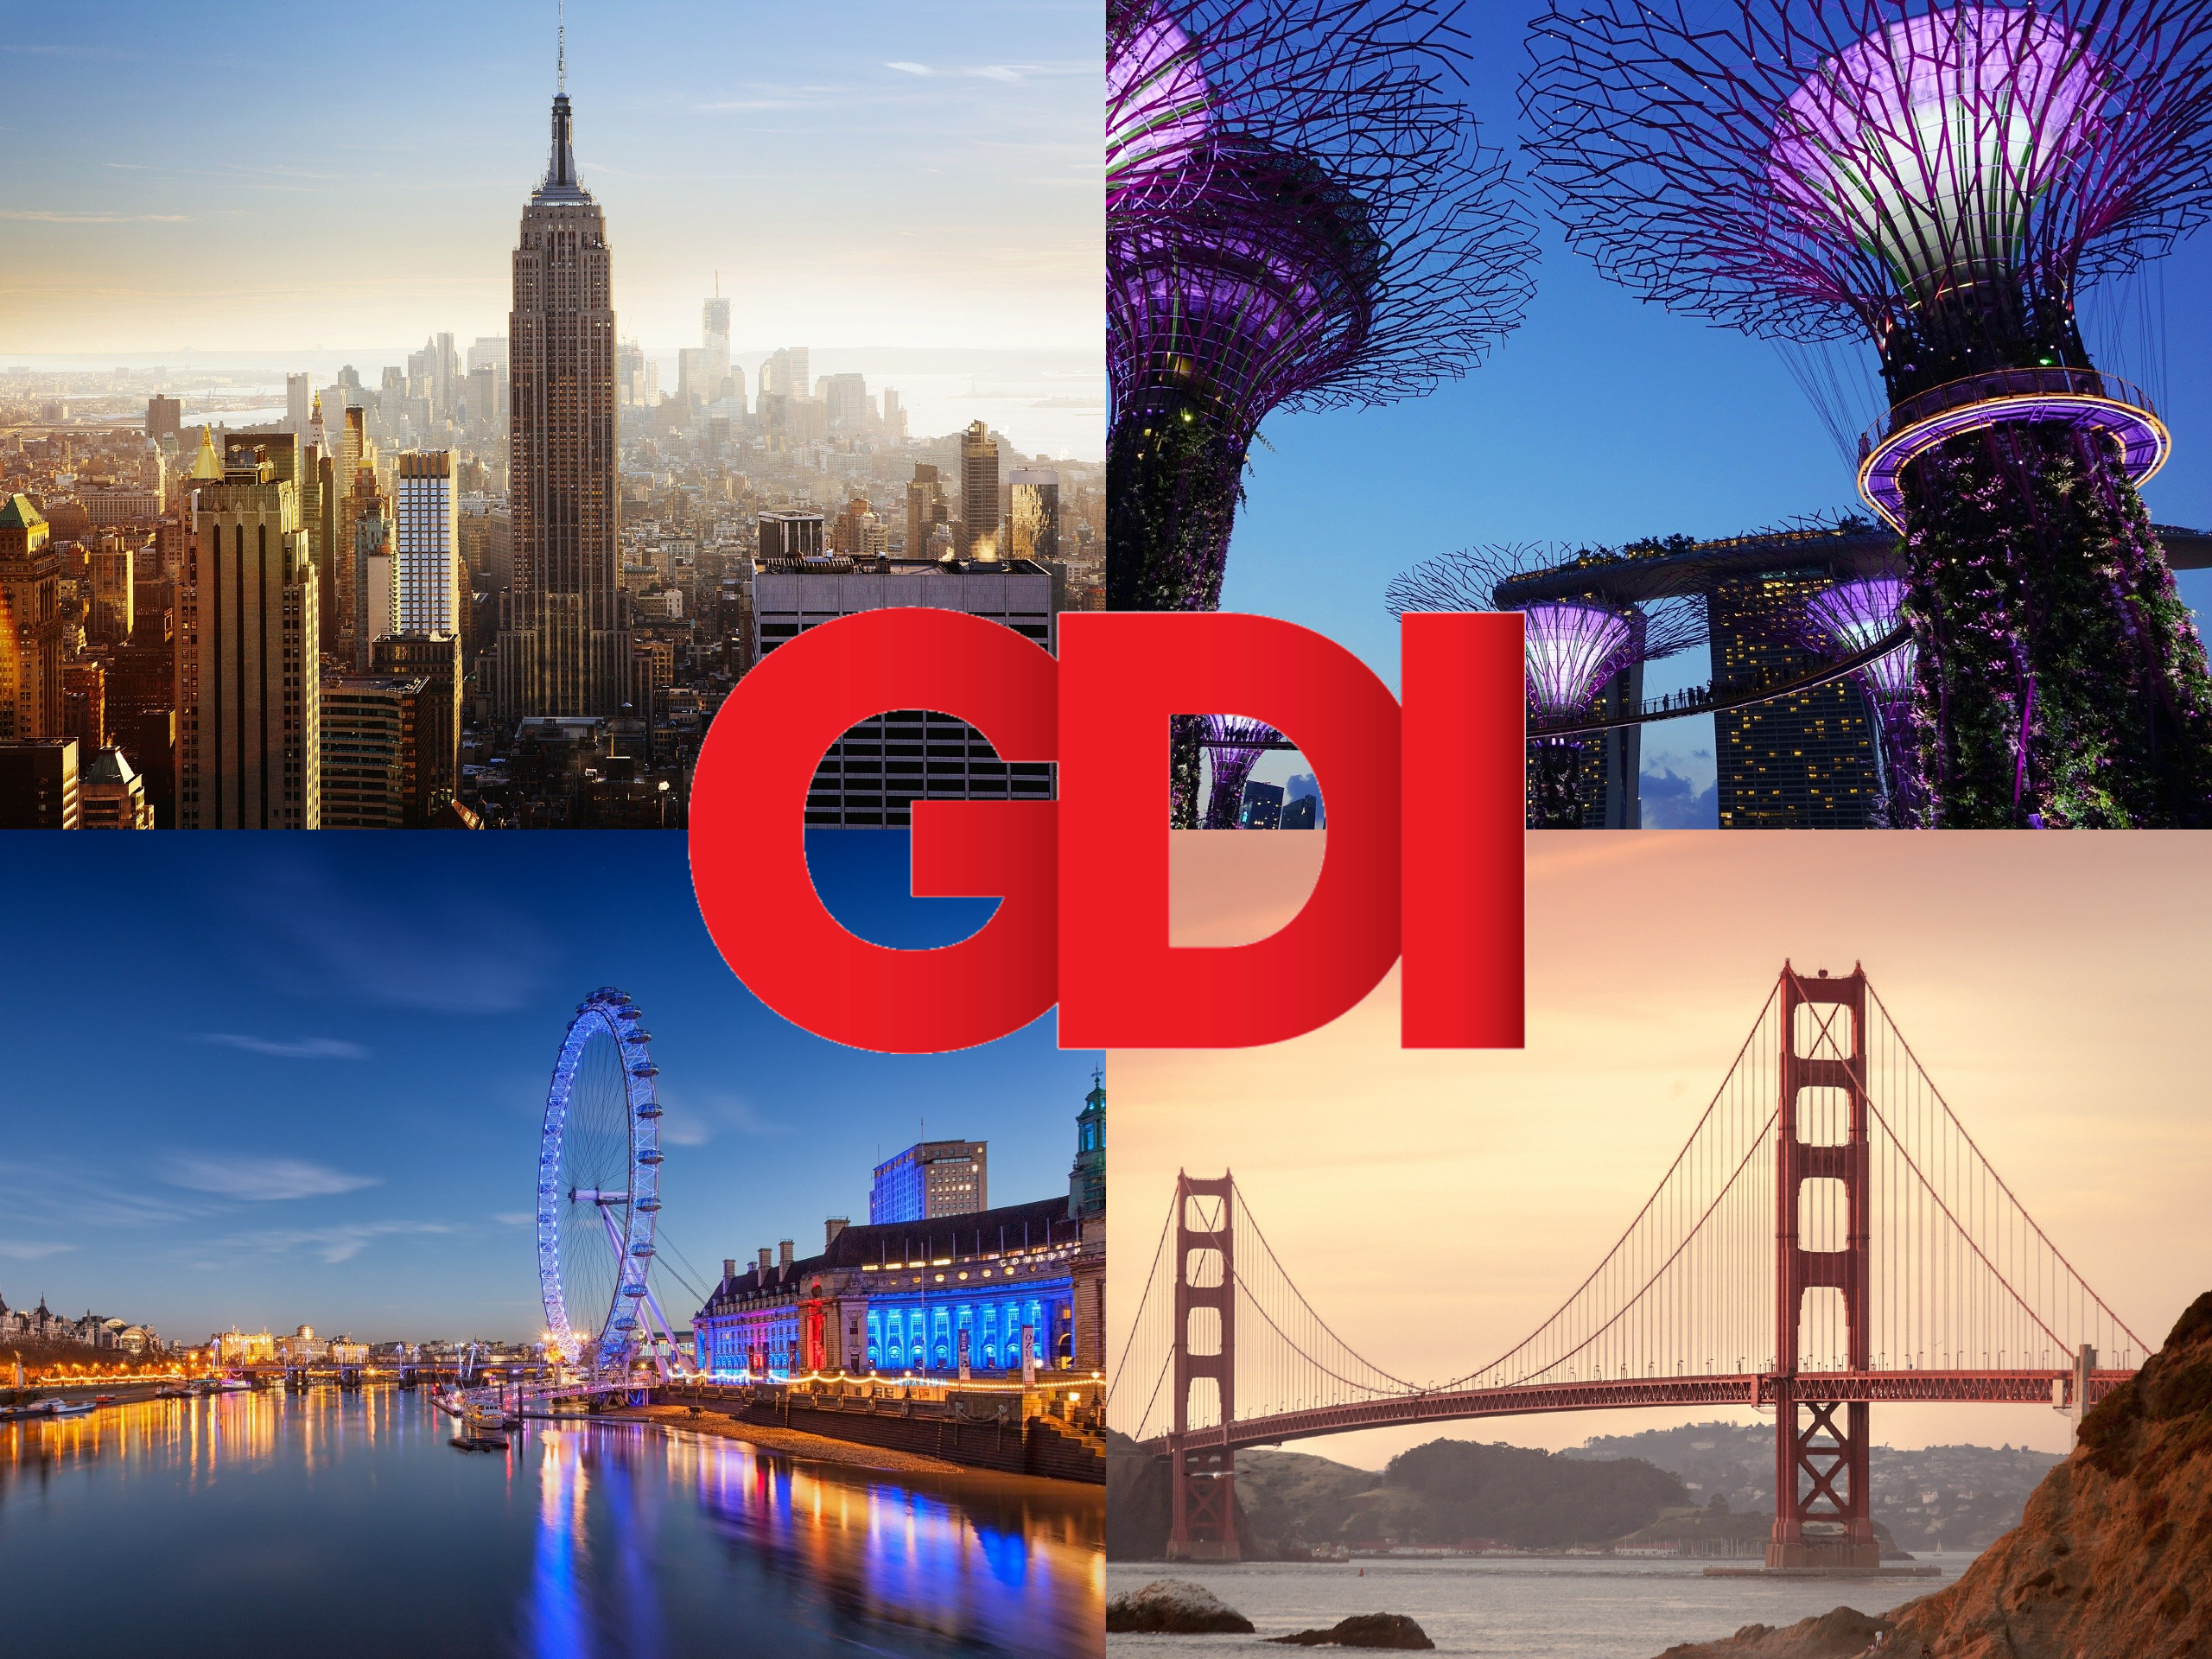 Global Dating Insights Announces Dates For Next Year's International Conferences!